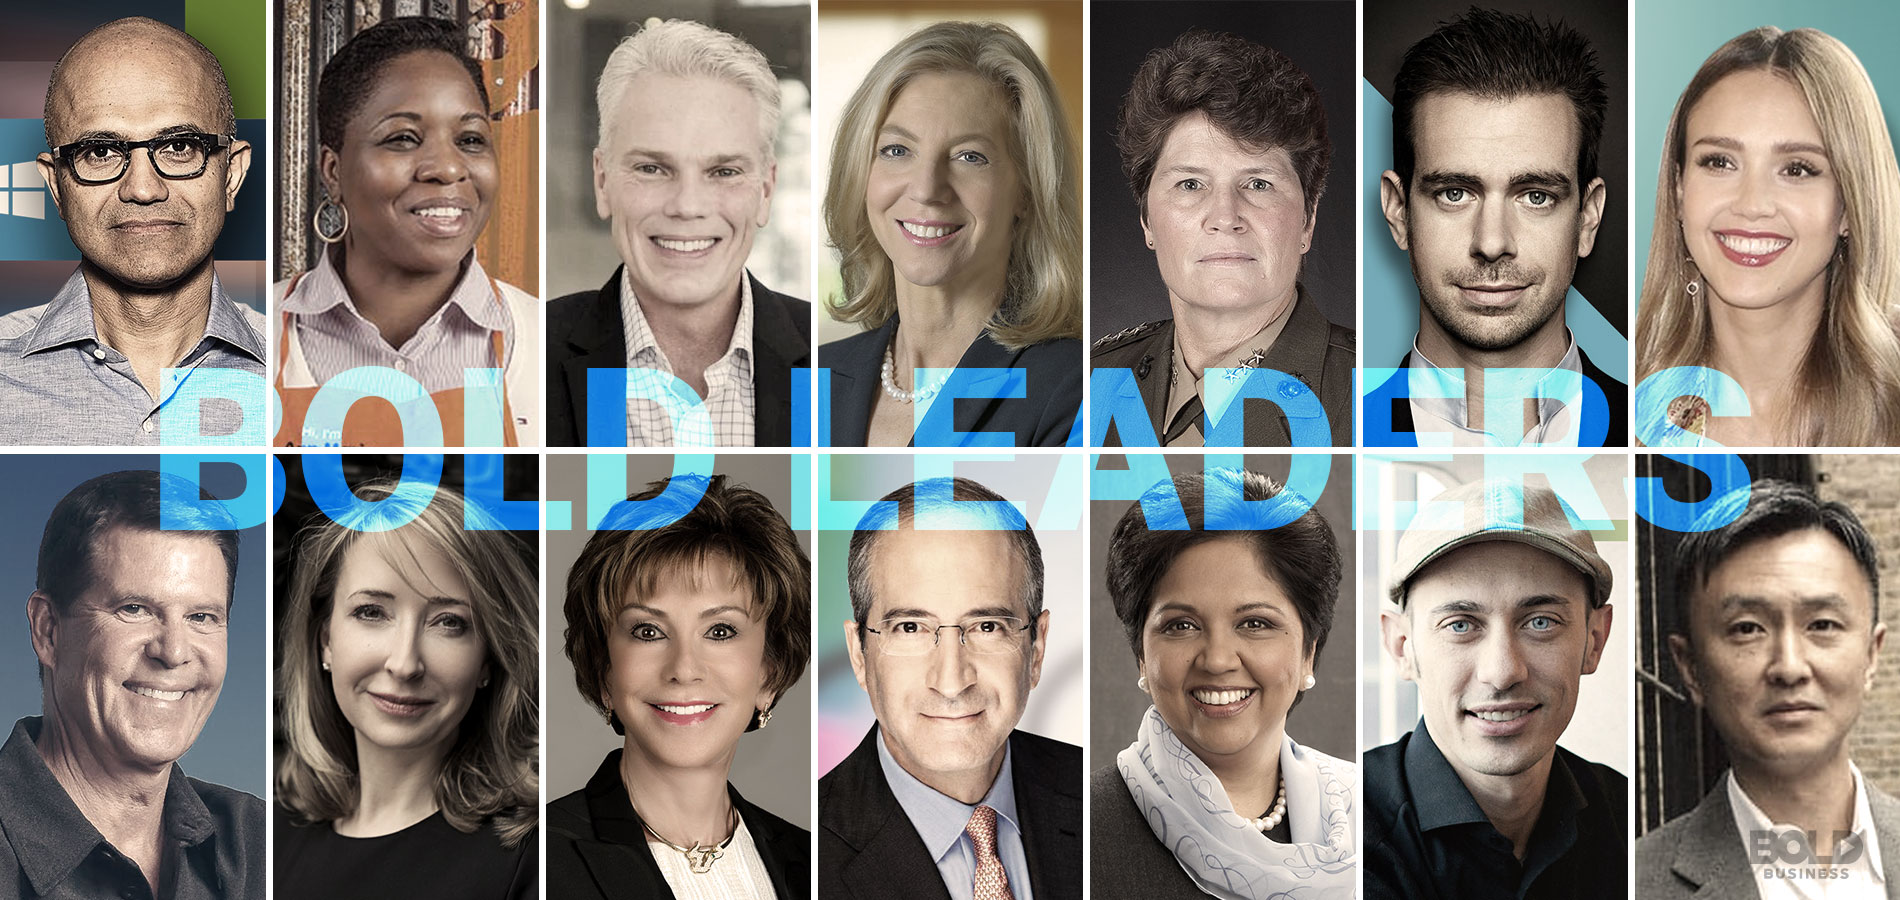 Bold Leaders List demonstrating characteristics of a bold leader